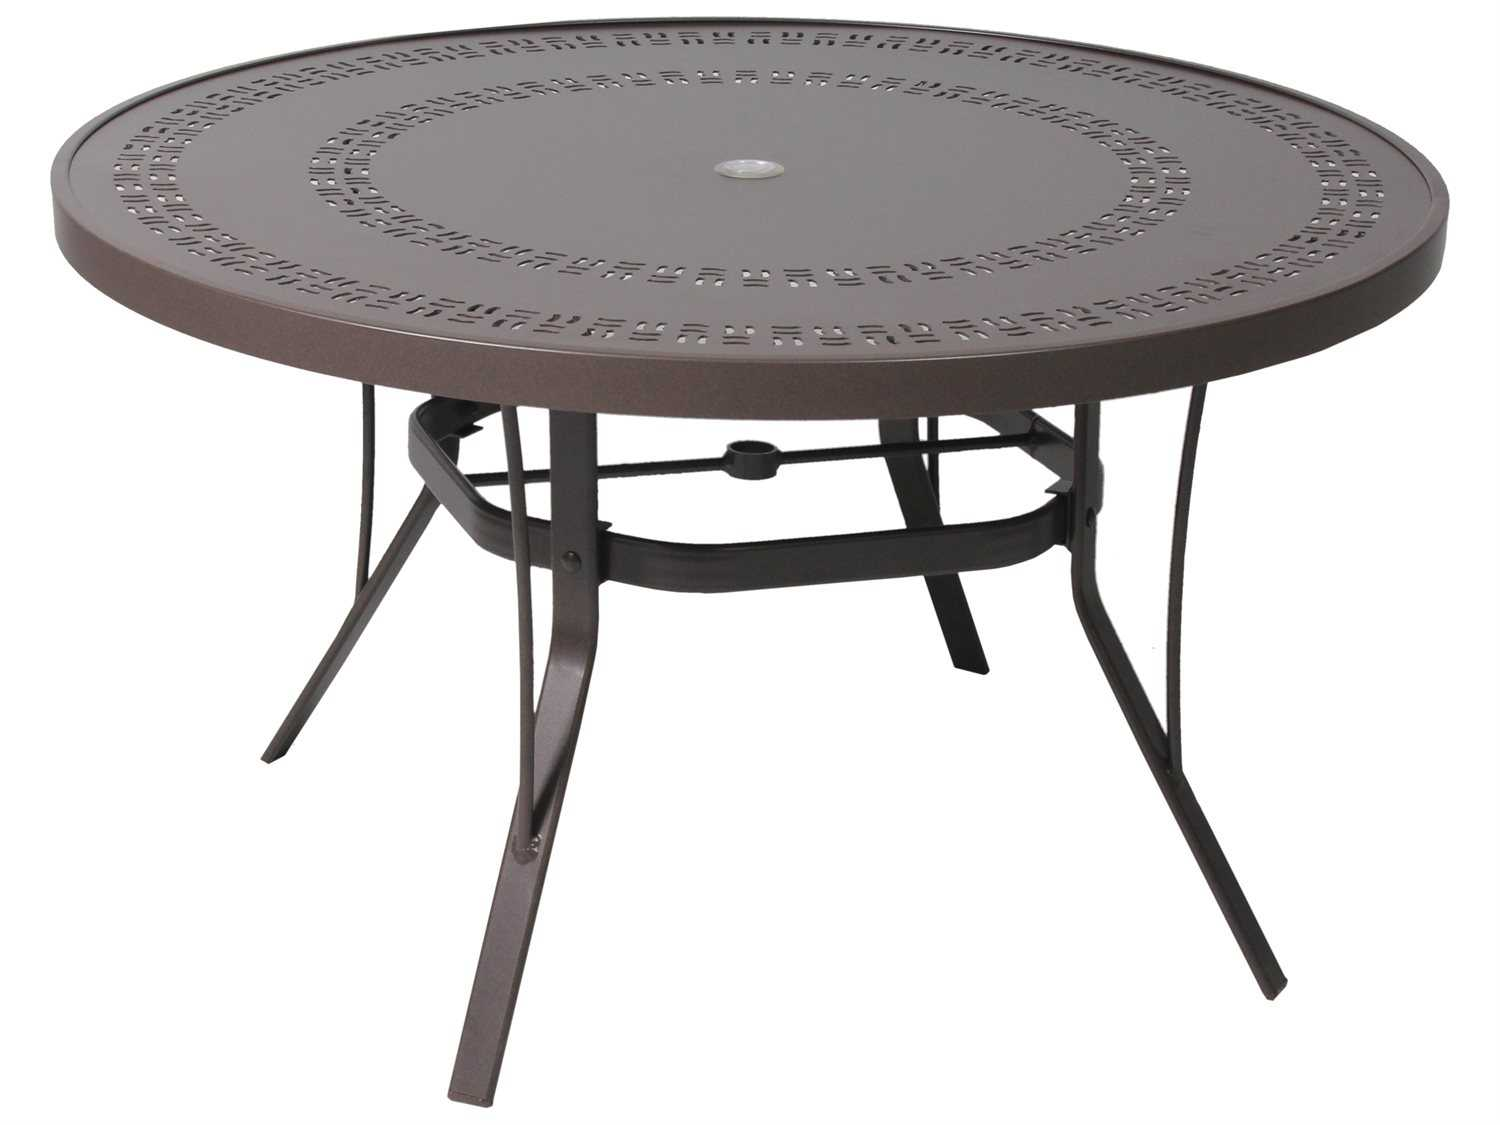 Suncoast patterned square aluminum 42 round metal coffee table suncoast patterned square aluminum 42 round metal coffee table with umbrella hole geotapseo Image collections